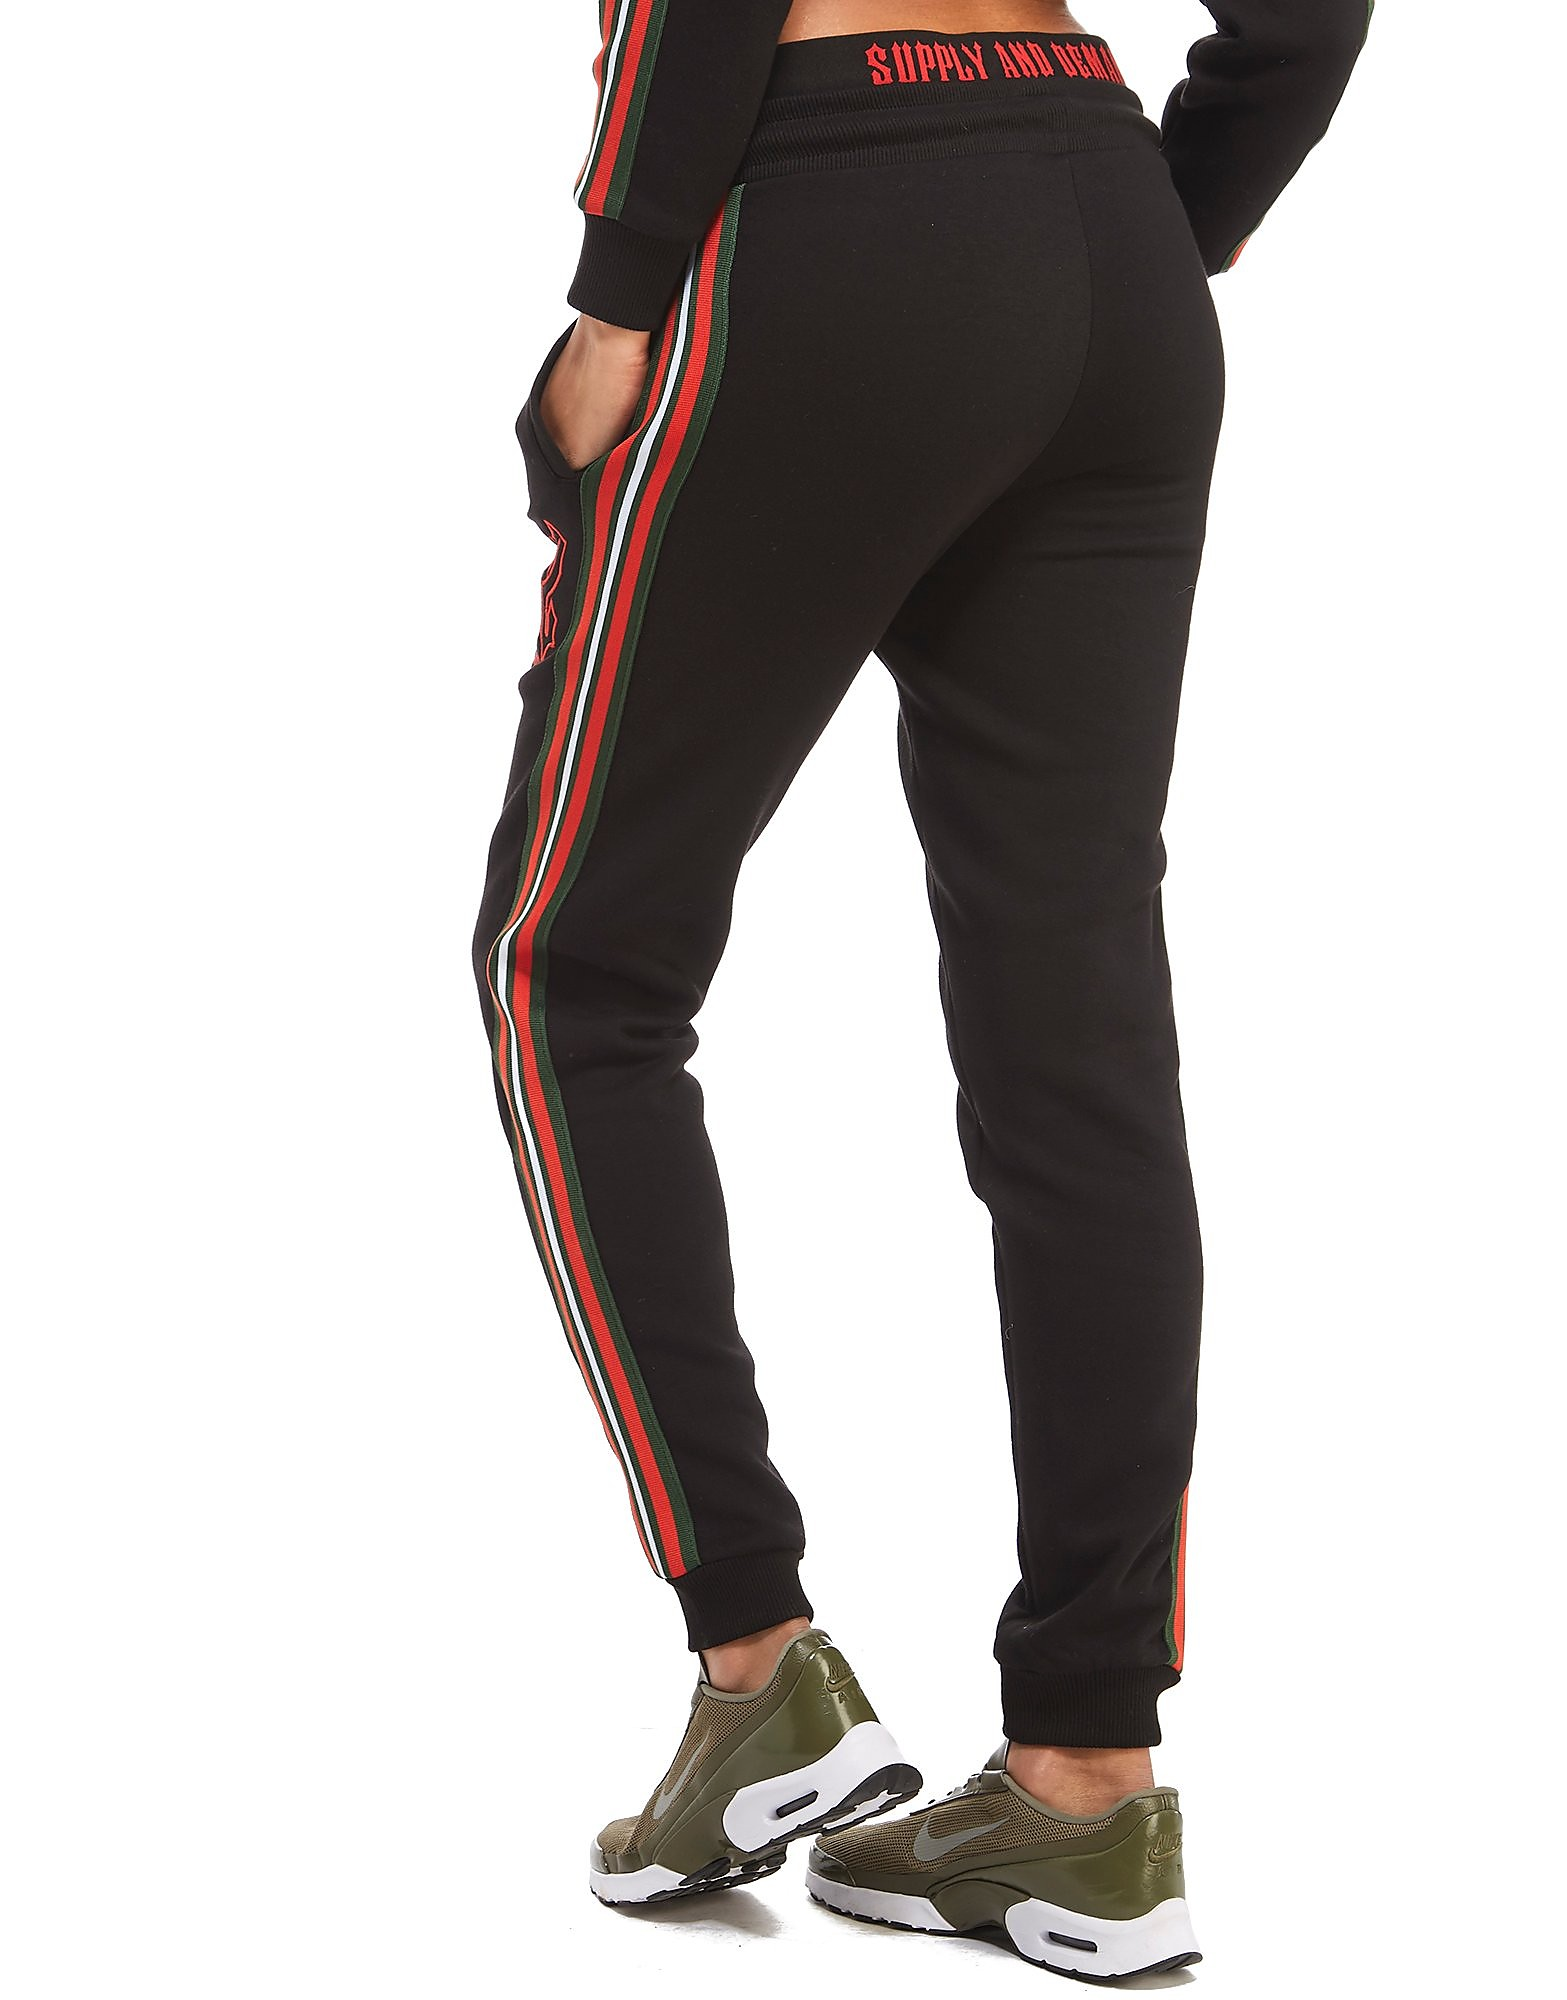 Supply & Demand Tape 32 Joggers